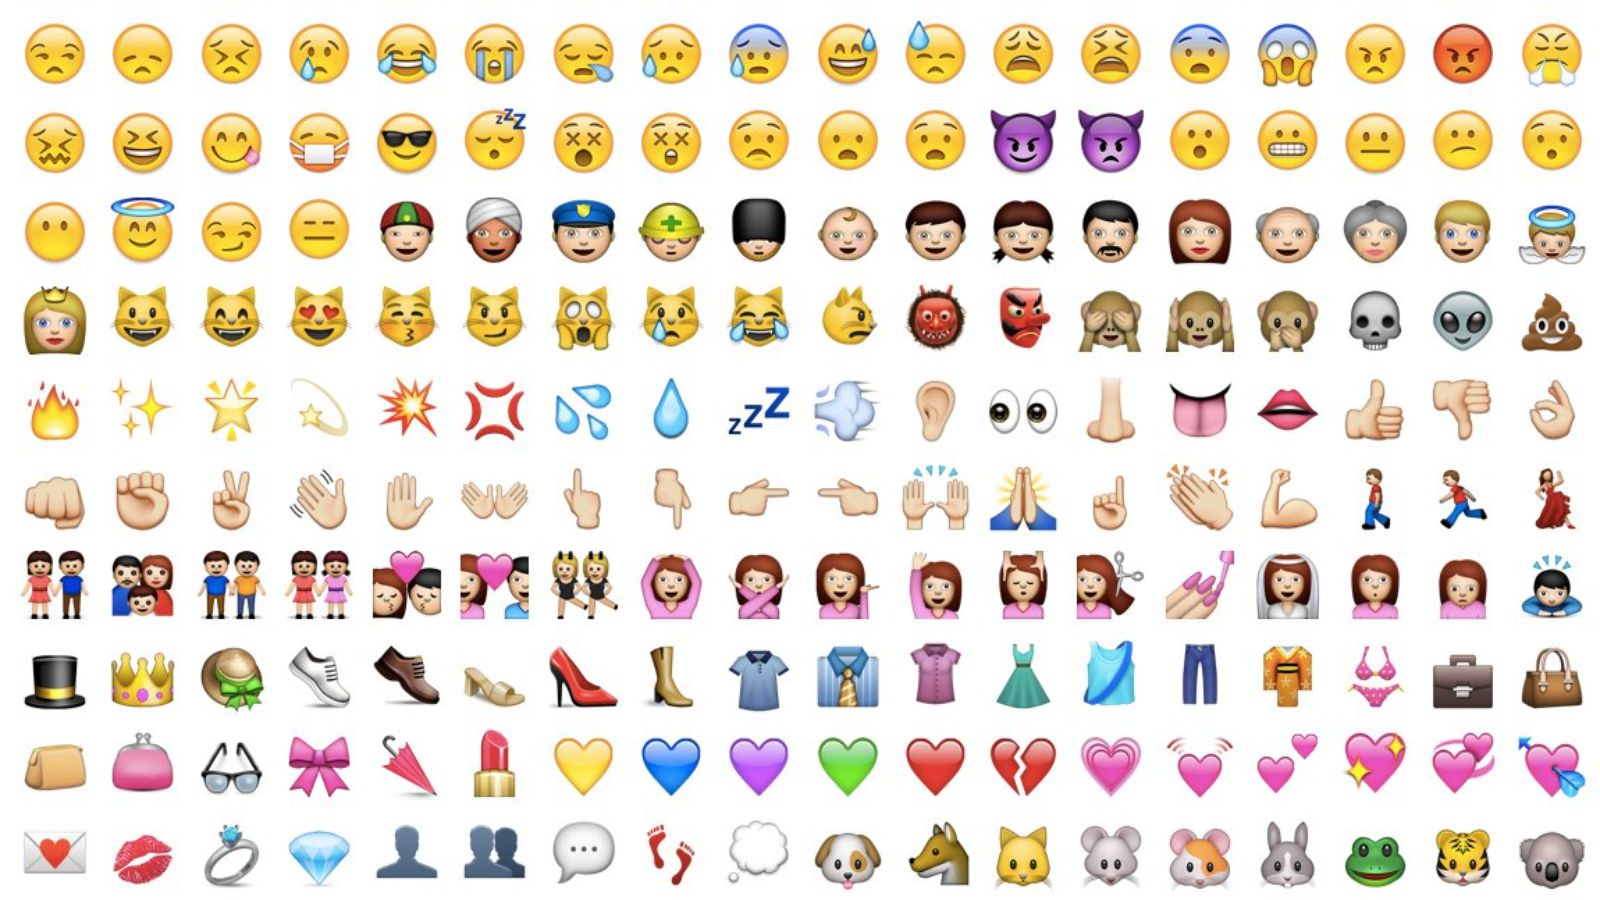 Know How to Use The Crying Emoji to Express Your Feelings